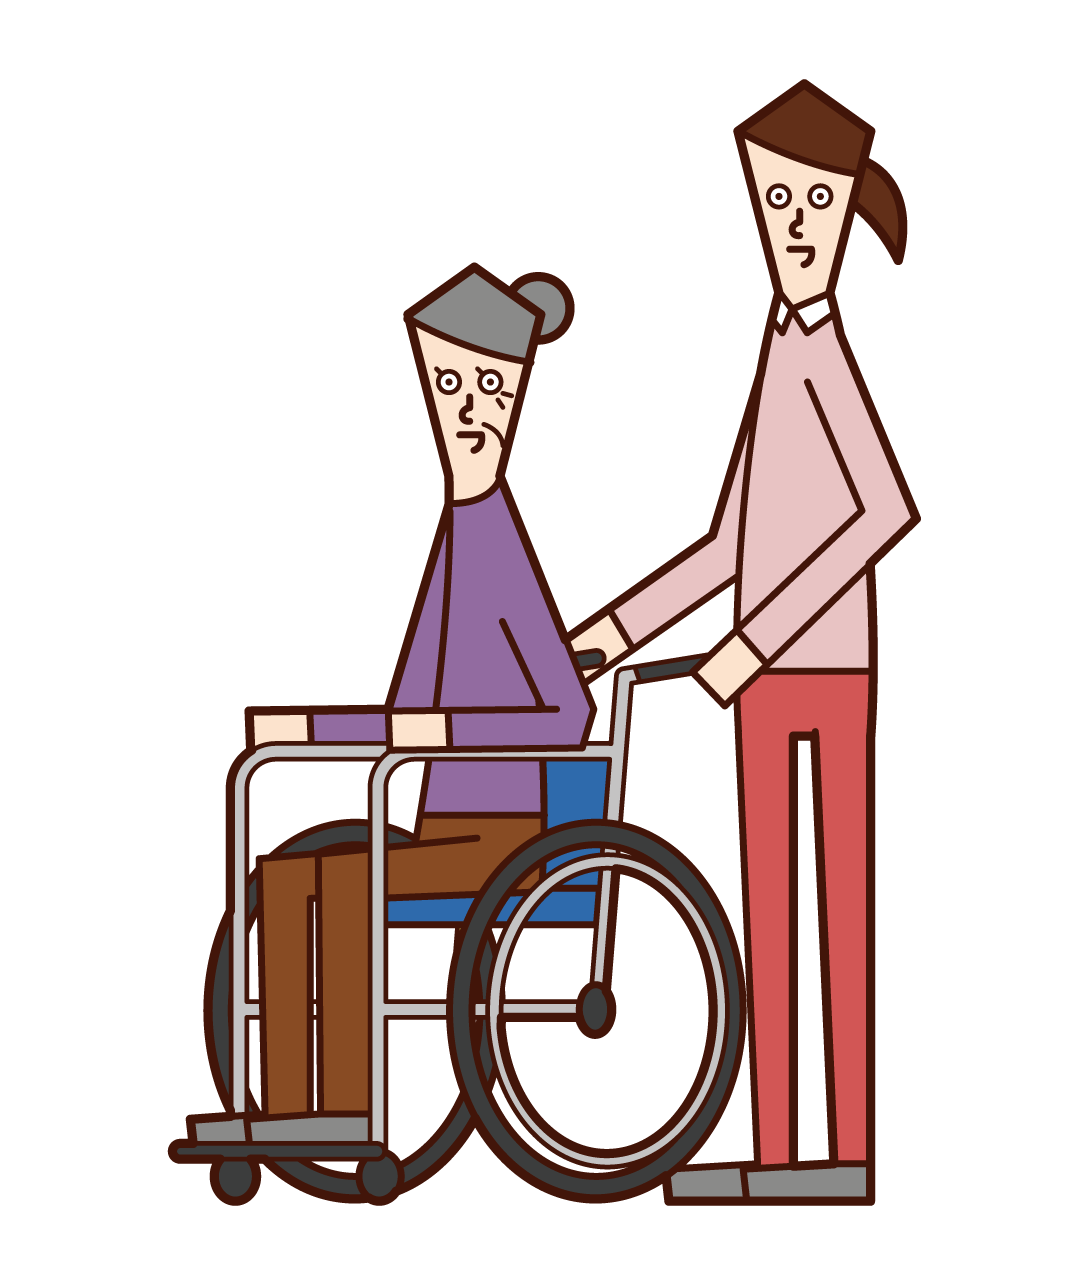 Illustration of a home helper (woman) pushing a wheelchair